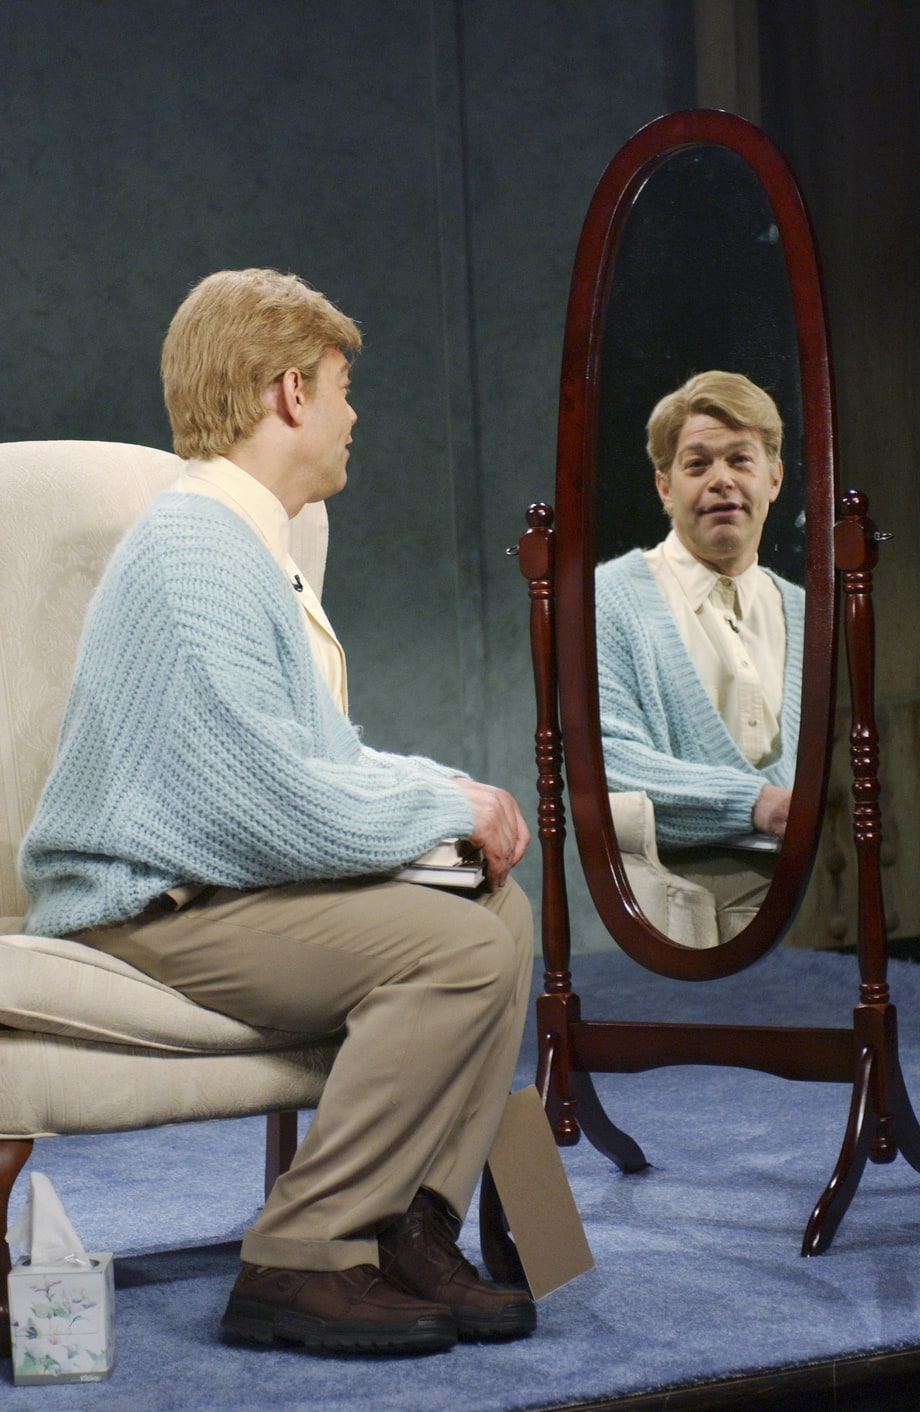 3. Stuart Smalley